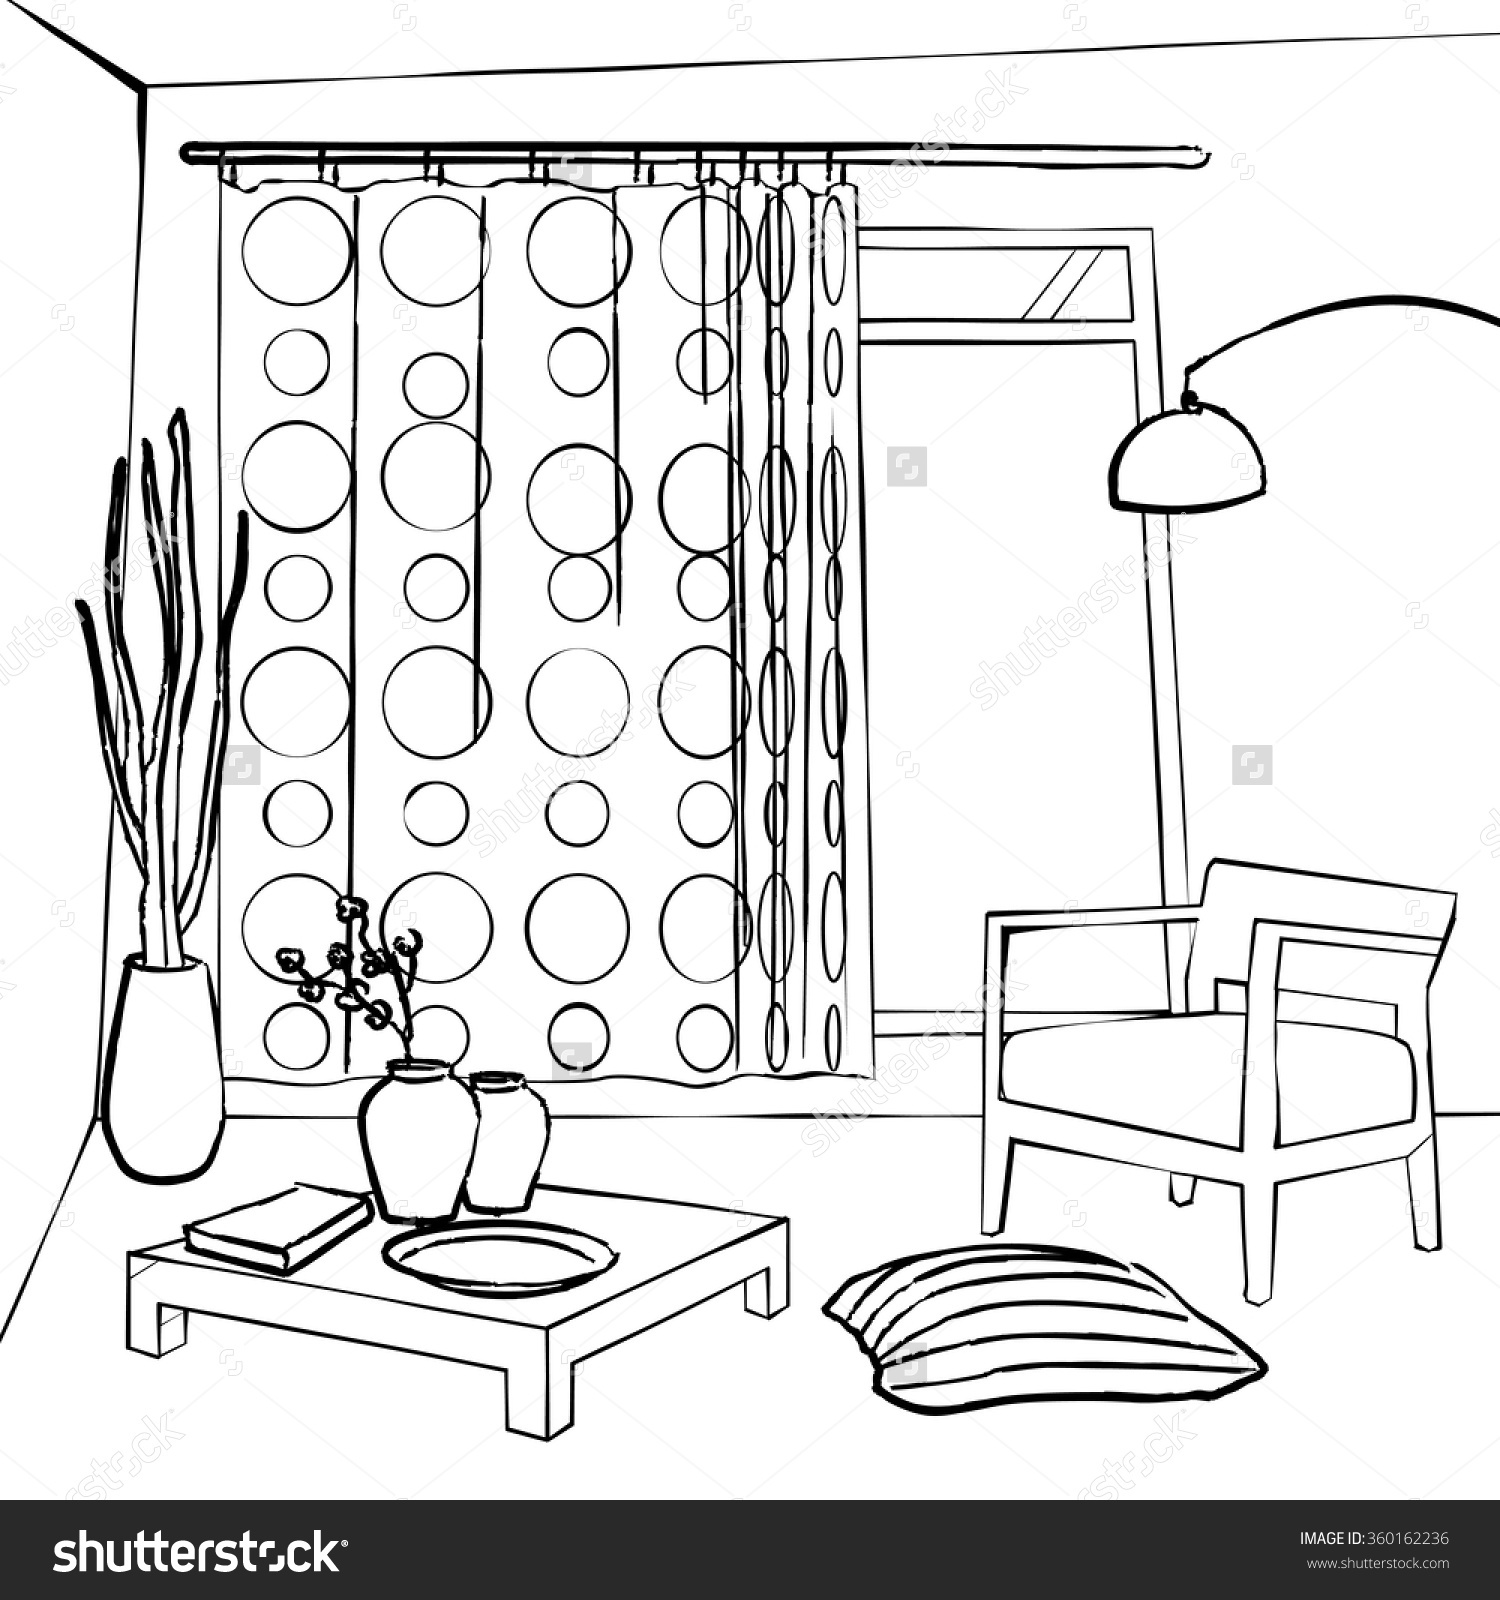 1500x1600 Sketch Vector Make Up Room Shutterstock Save To A Lightbox ~ idolza